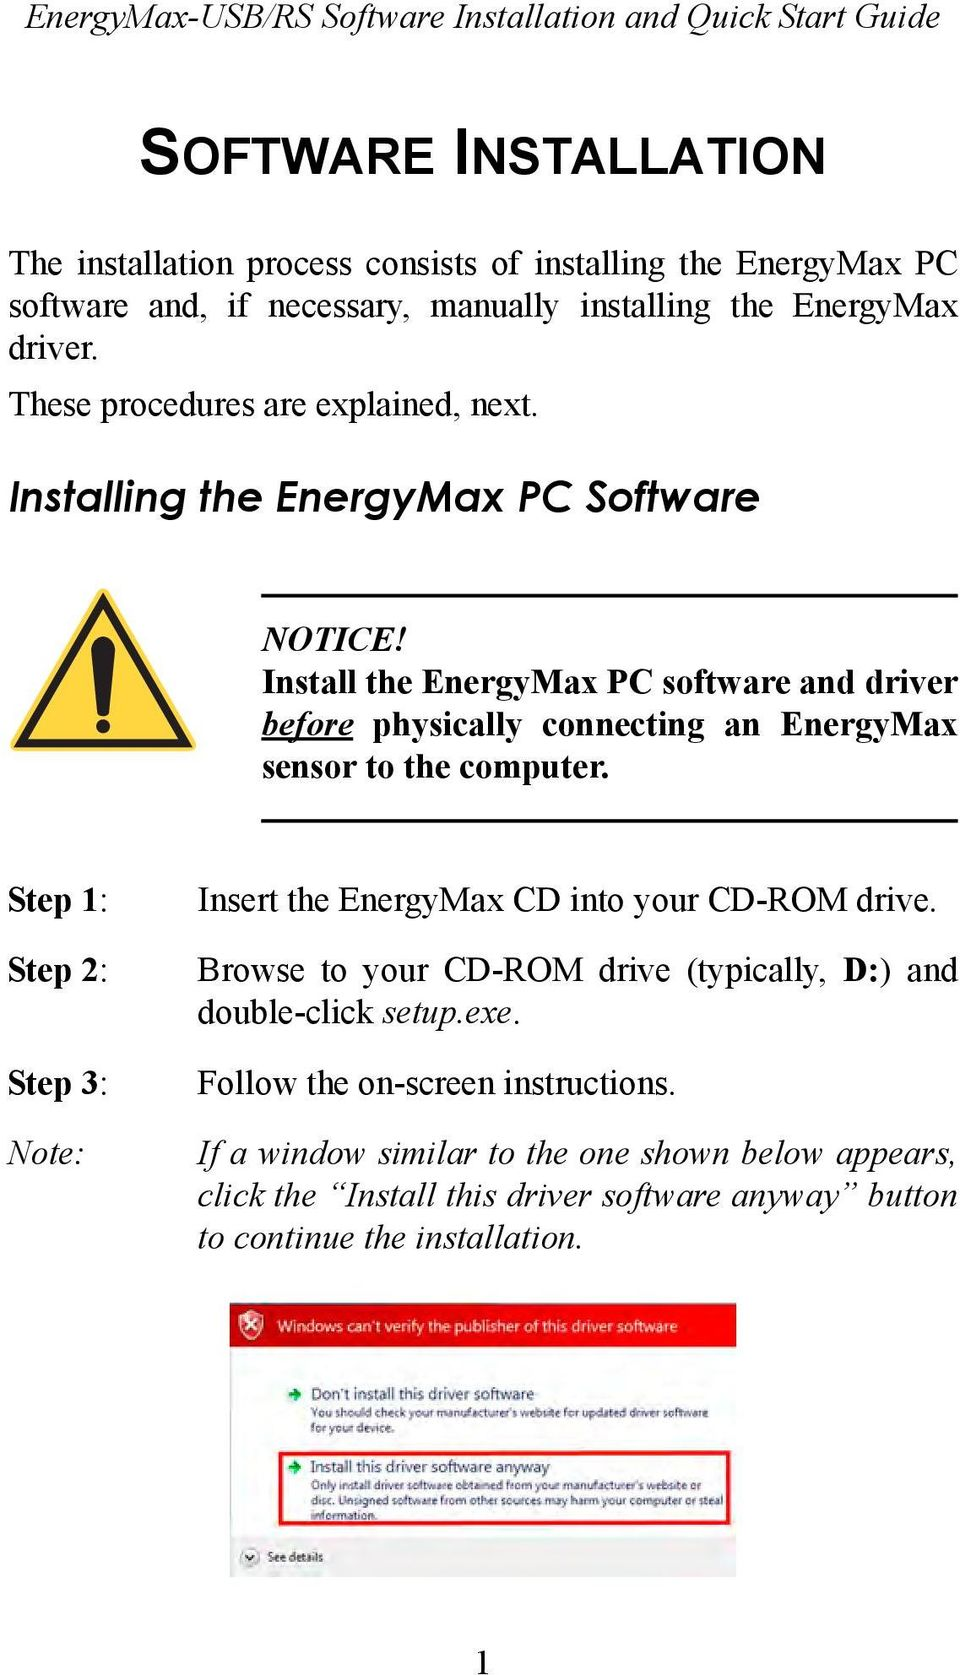 Install the EnergyMax PC software and driver before physically connecting an EnergyMax sensor to the computer.